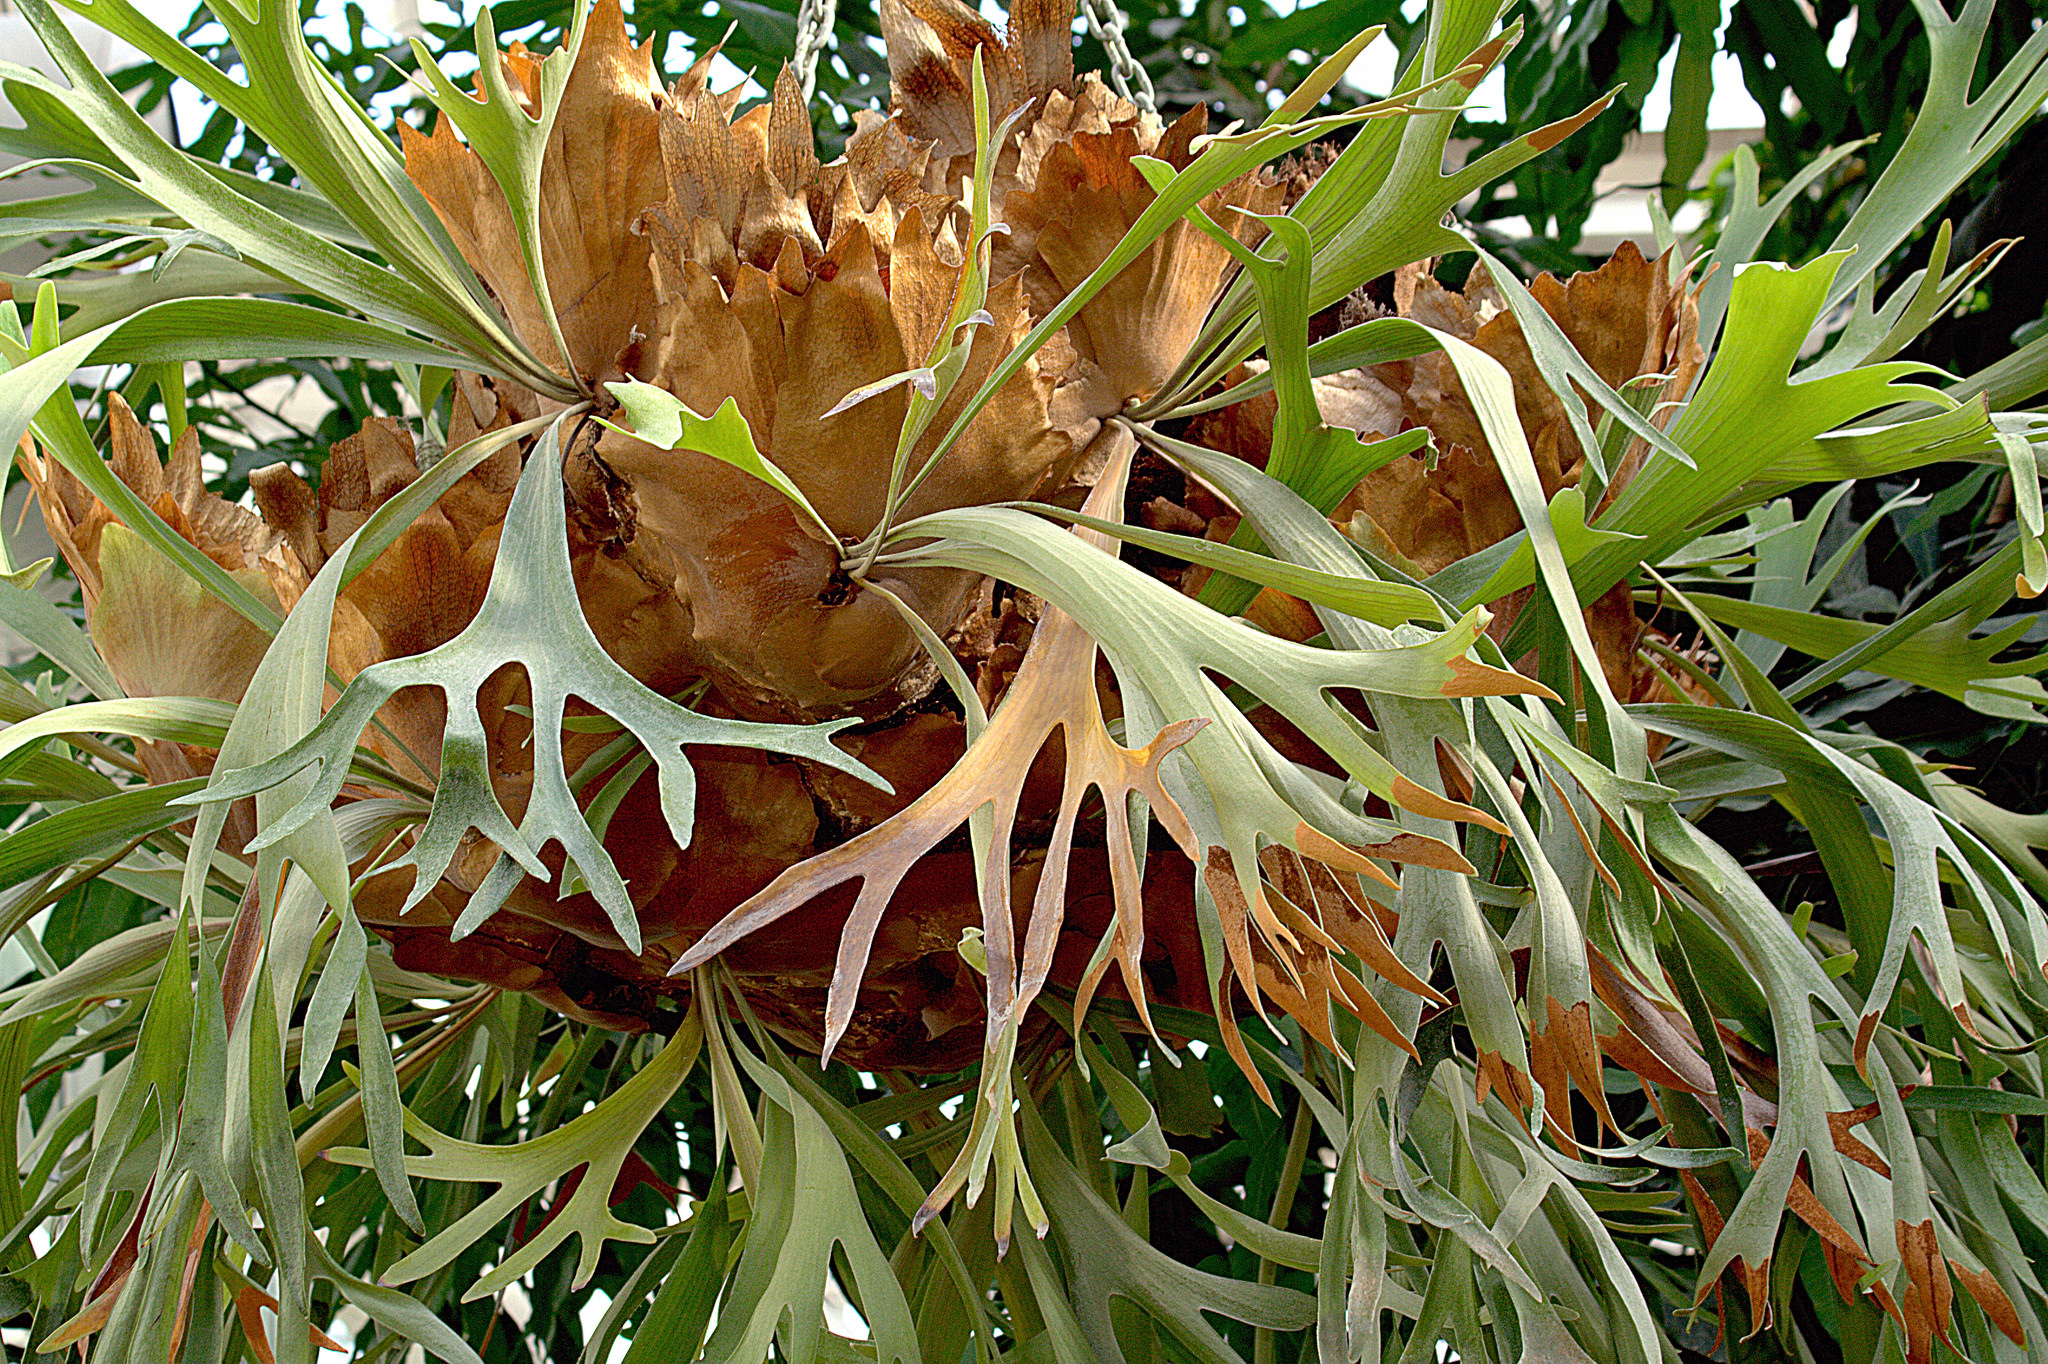 Staghorn fern (Platycerium bifurcatum) photo courtesy of flickr cc/ manuel m. v.